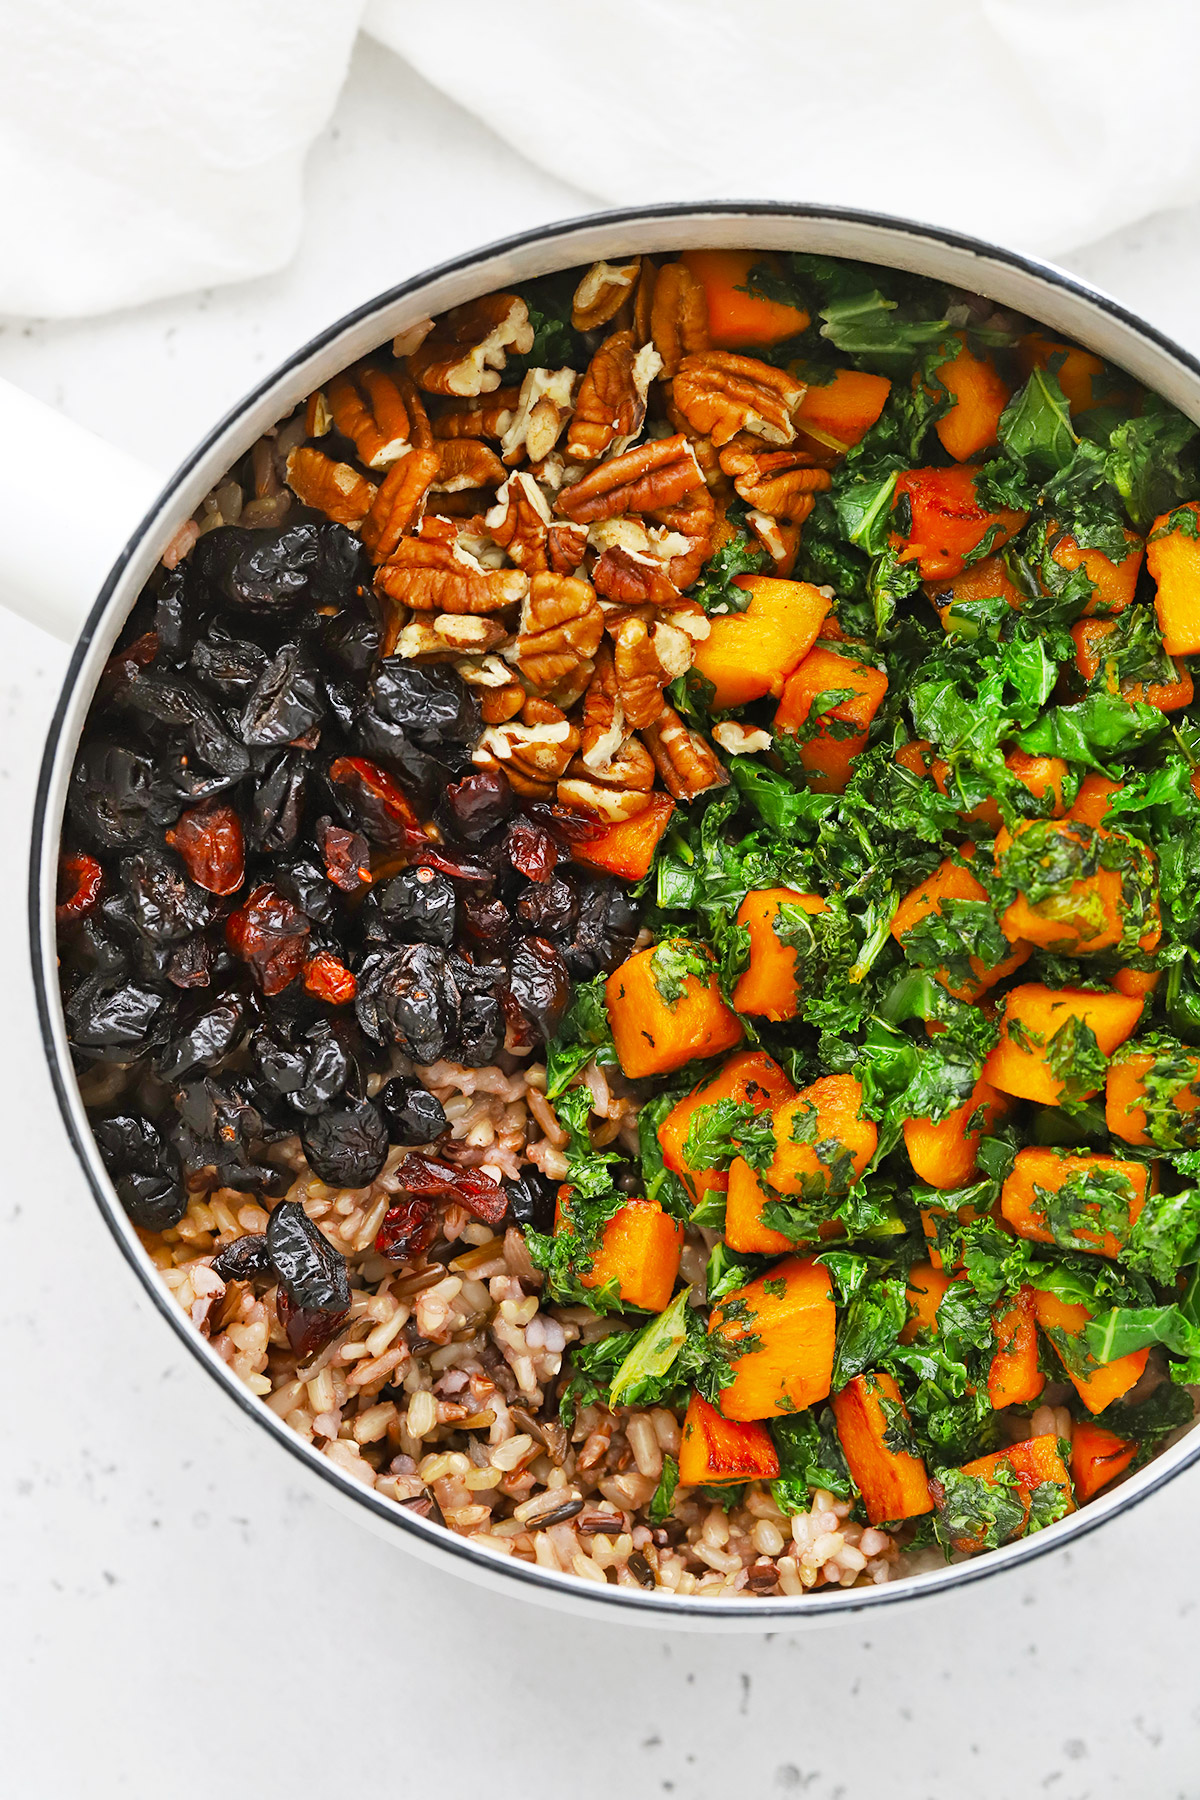 Overhead view of a saucepan with ingredienets for Wild Rice Pilaf ready to be mixed--wild rice blend, dried cranberries, toasted pecans, butternut squash, and kale